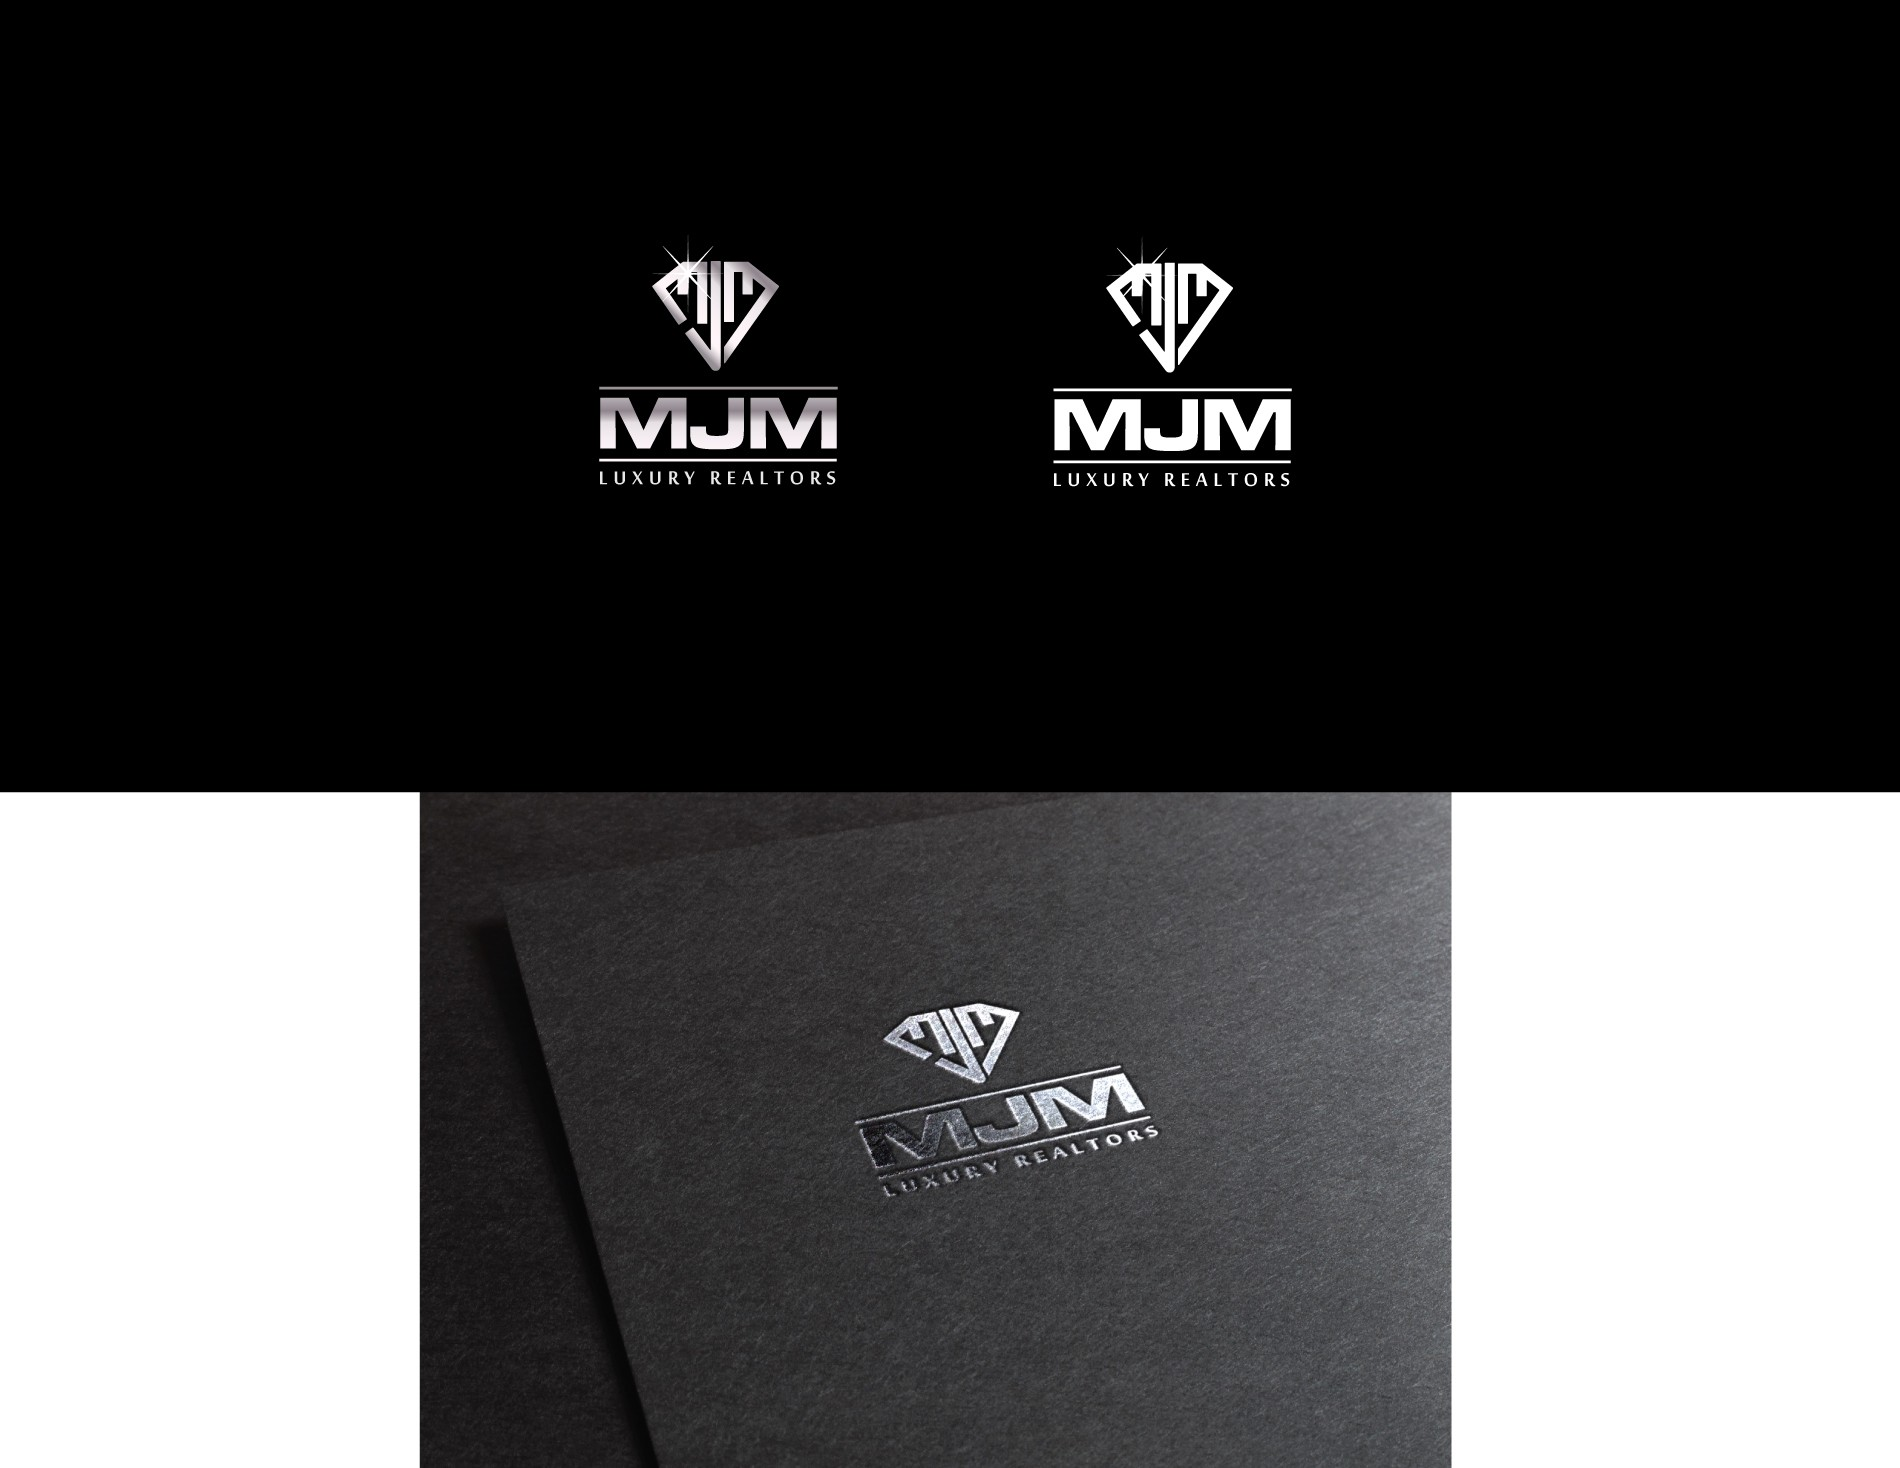 Create a bold & eyecatching logo for Luxury Real Estate brand from Miami focused on luxury lifestyle